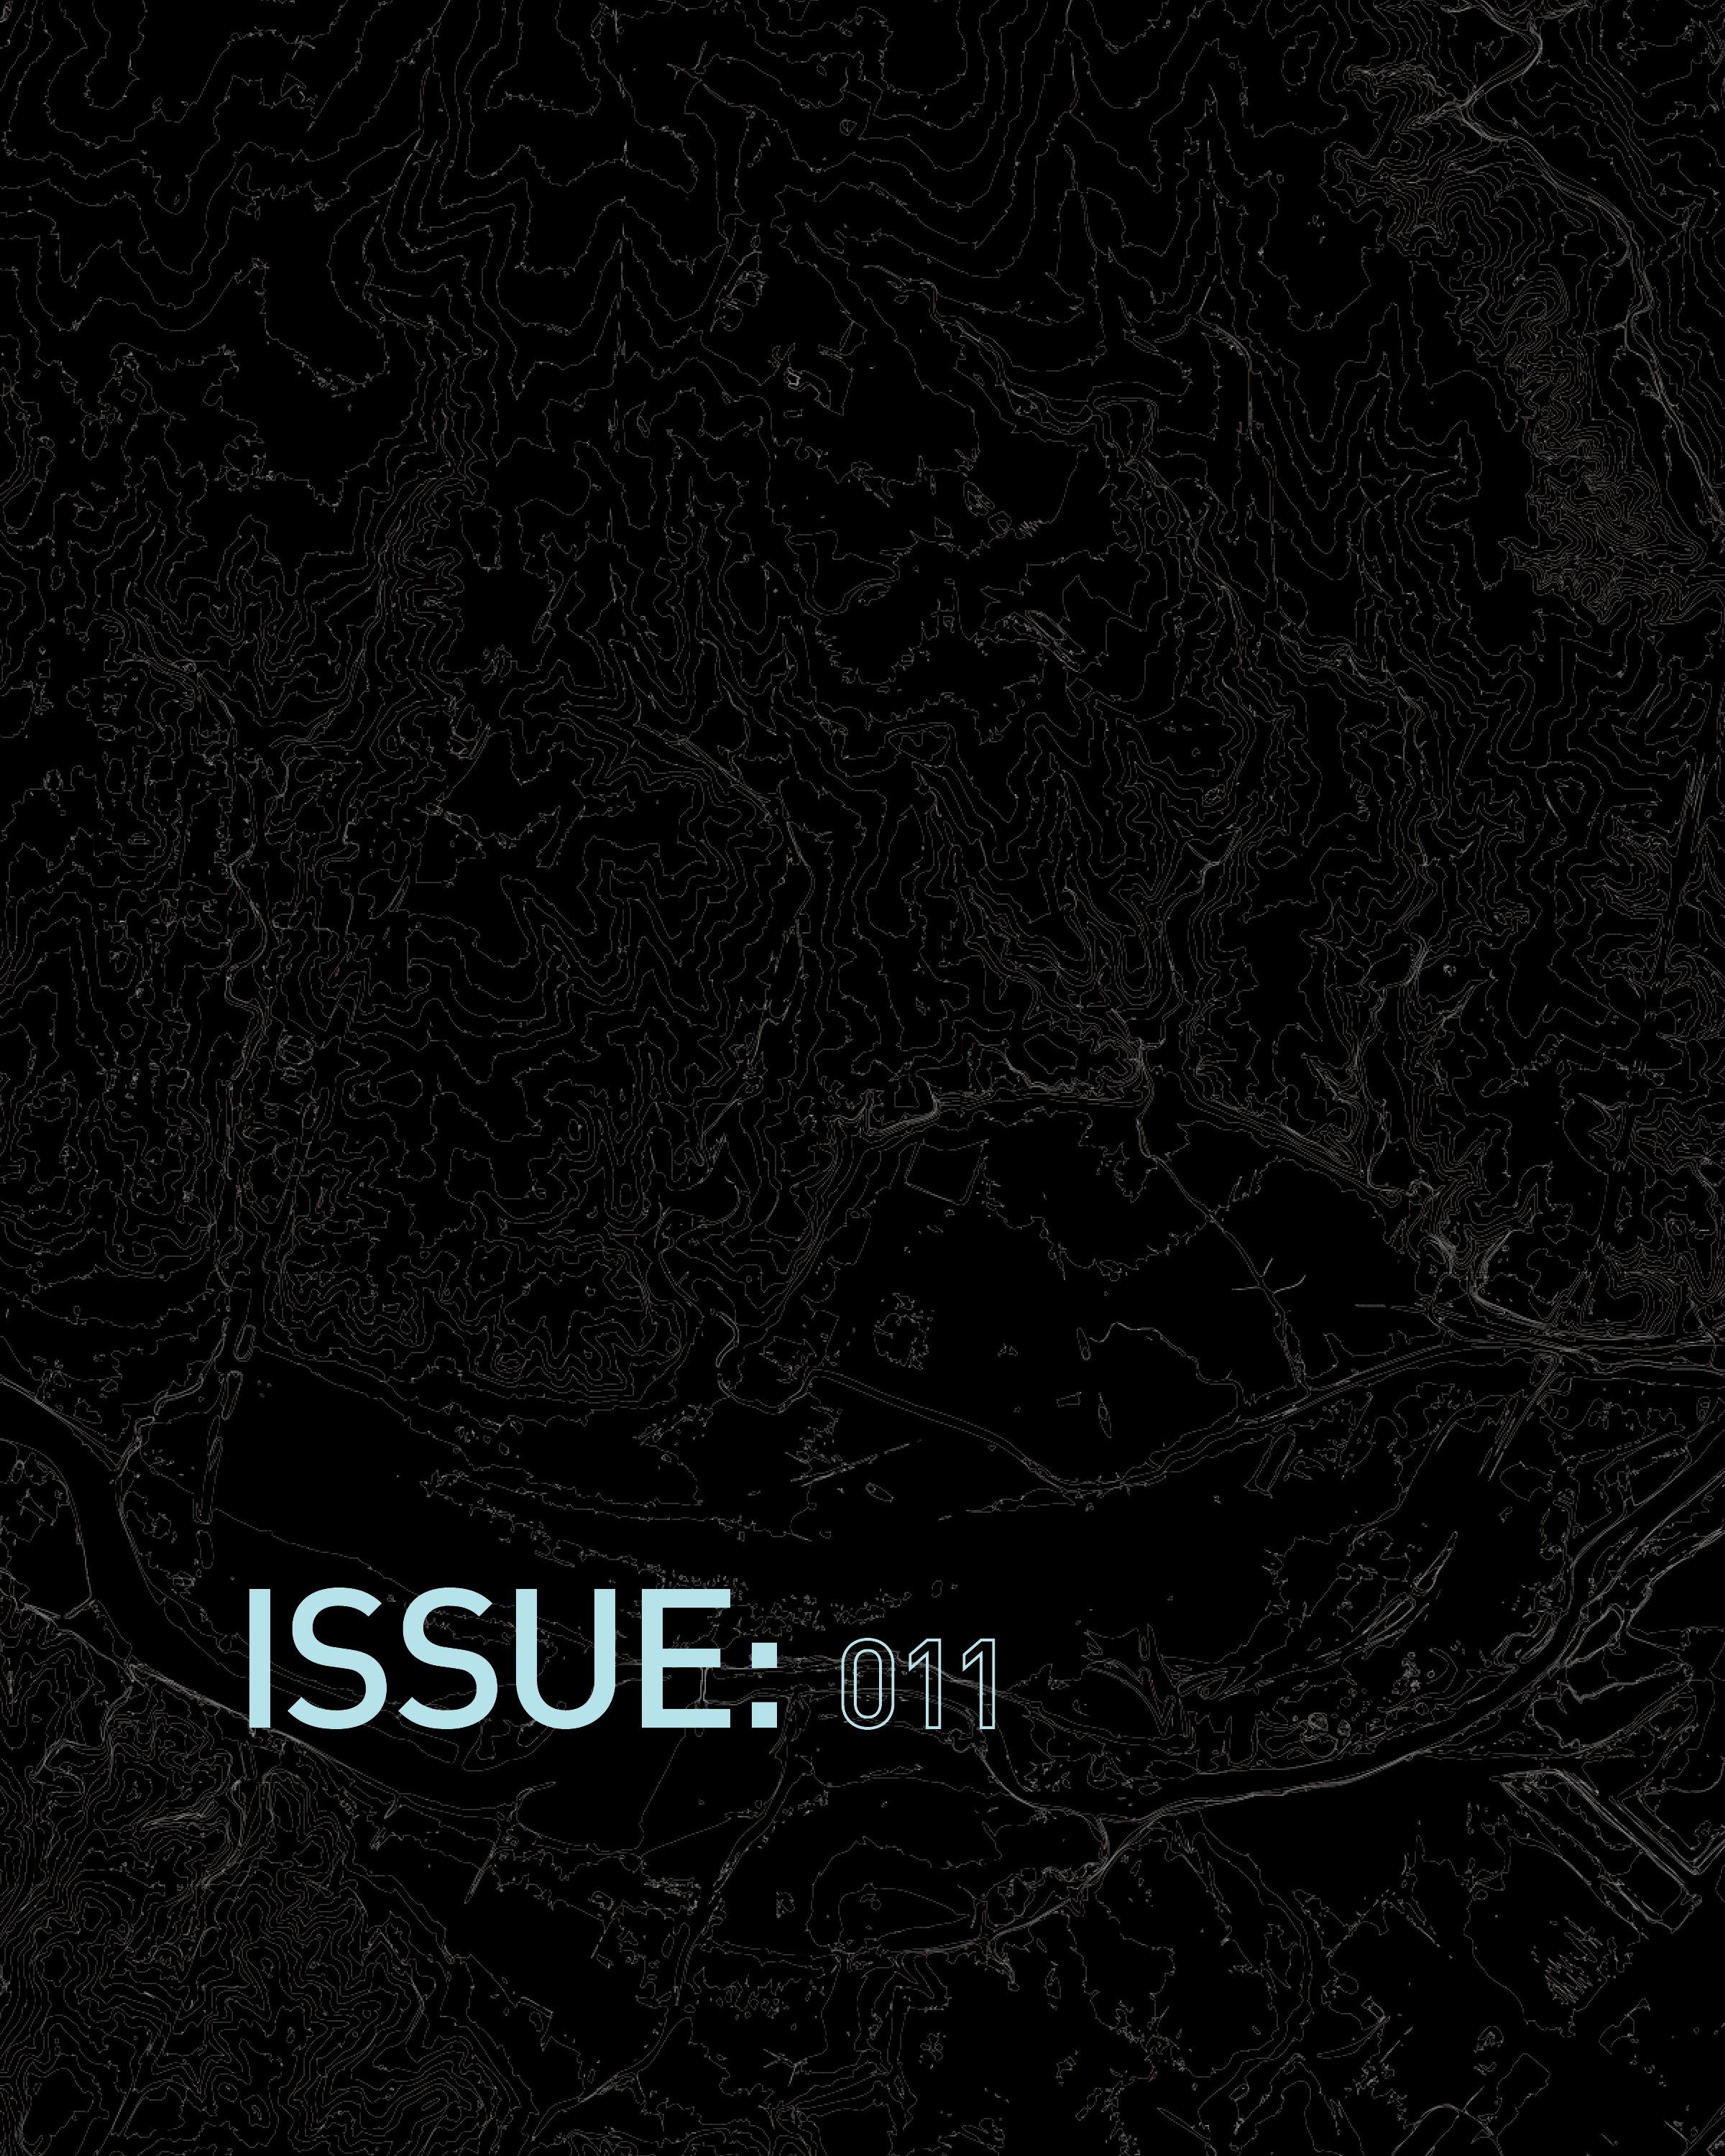 ISSUE: 011 cover